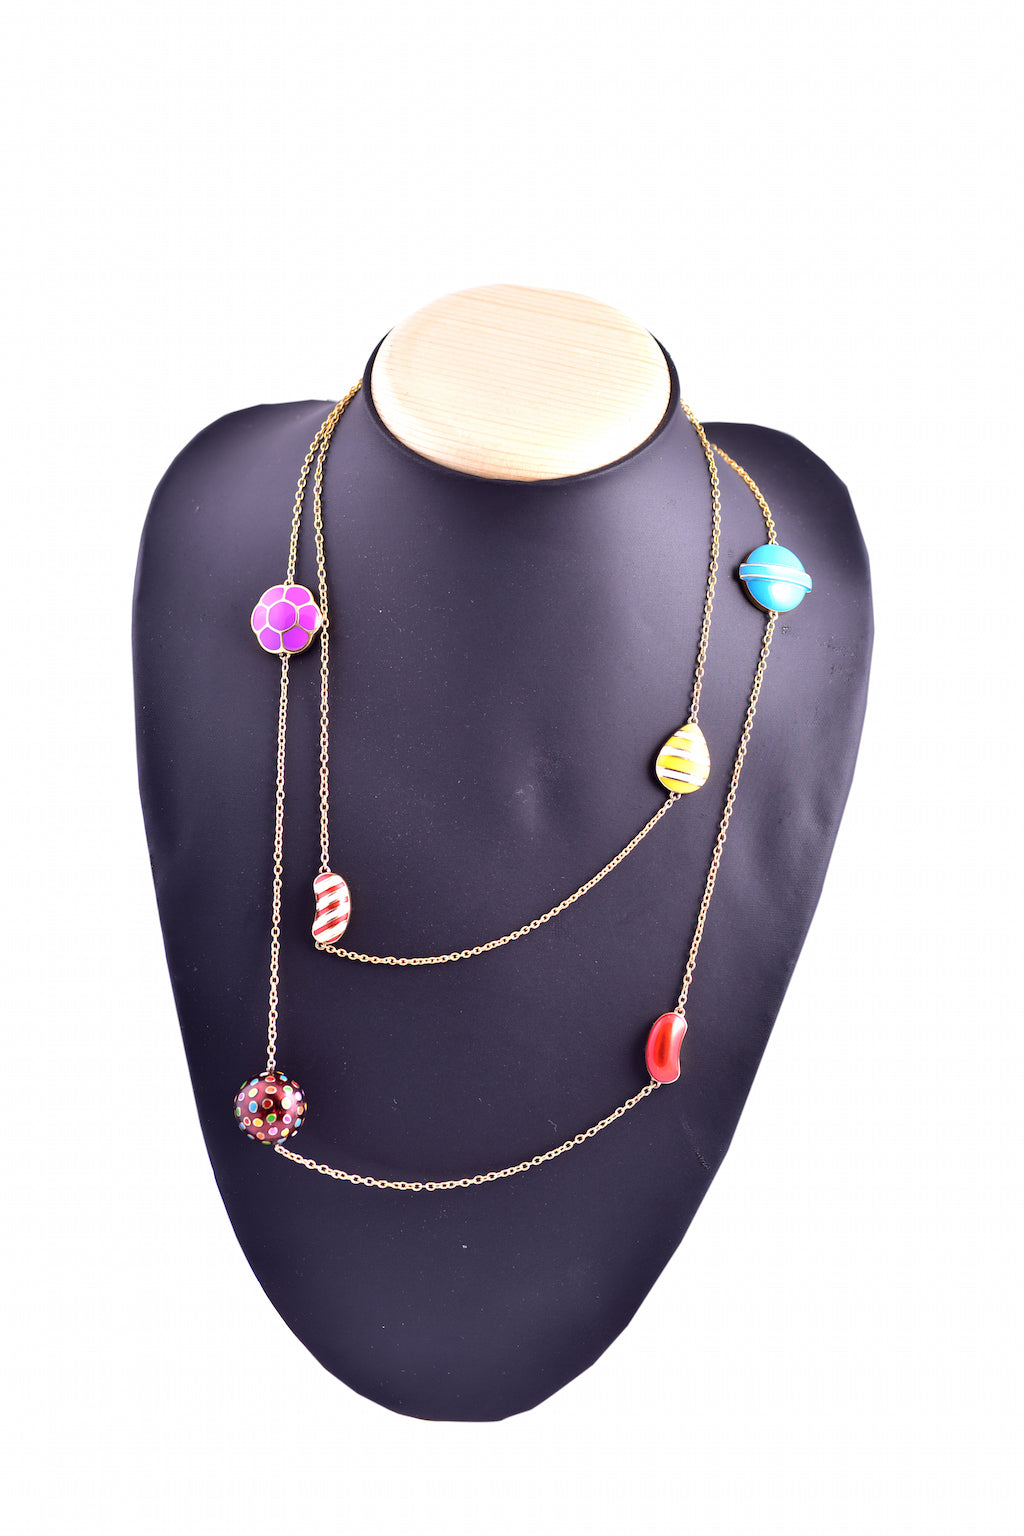 6 Candy Lariat Necklace